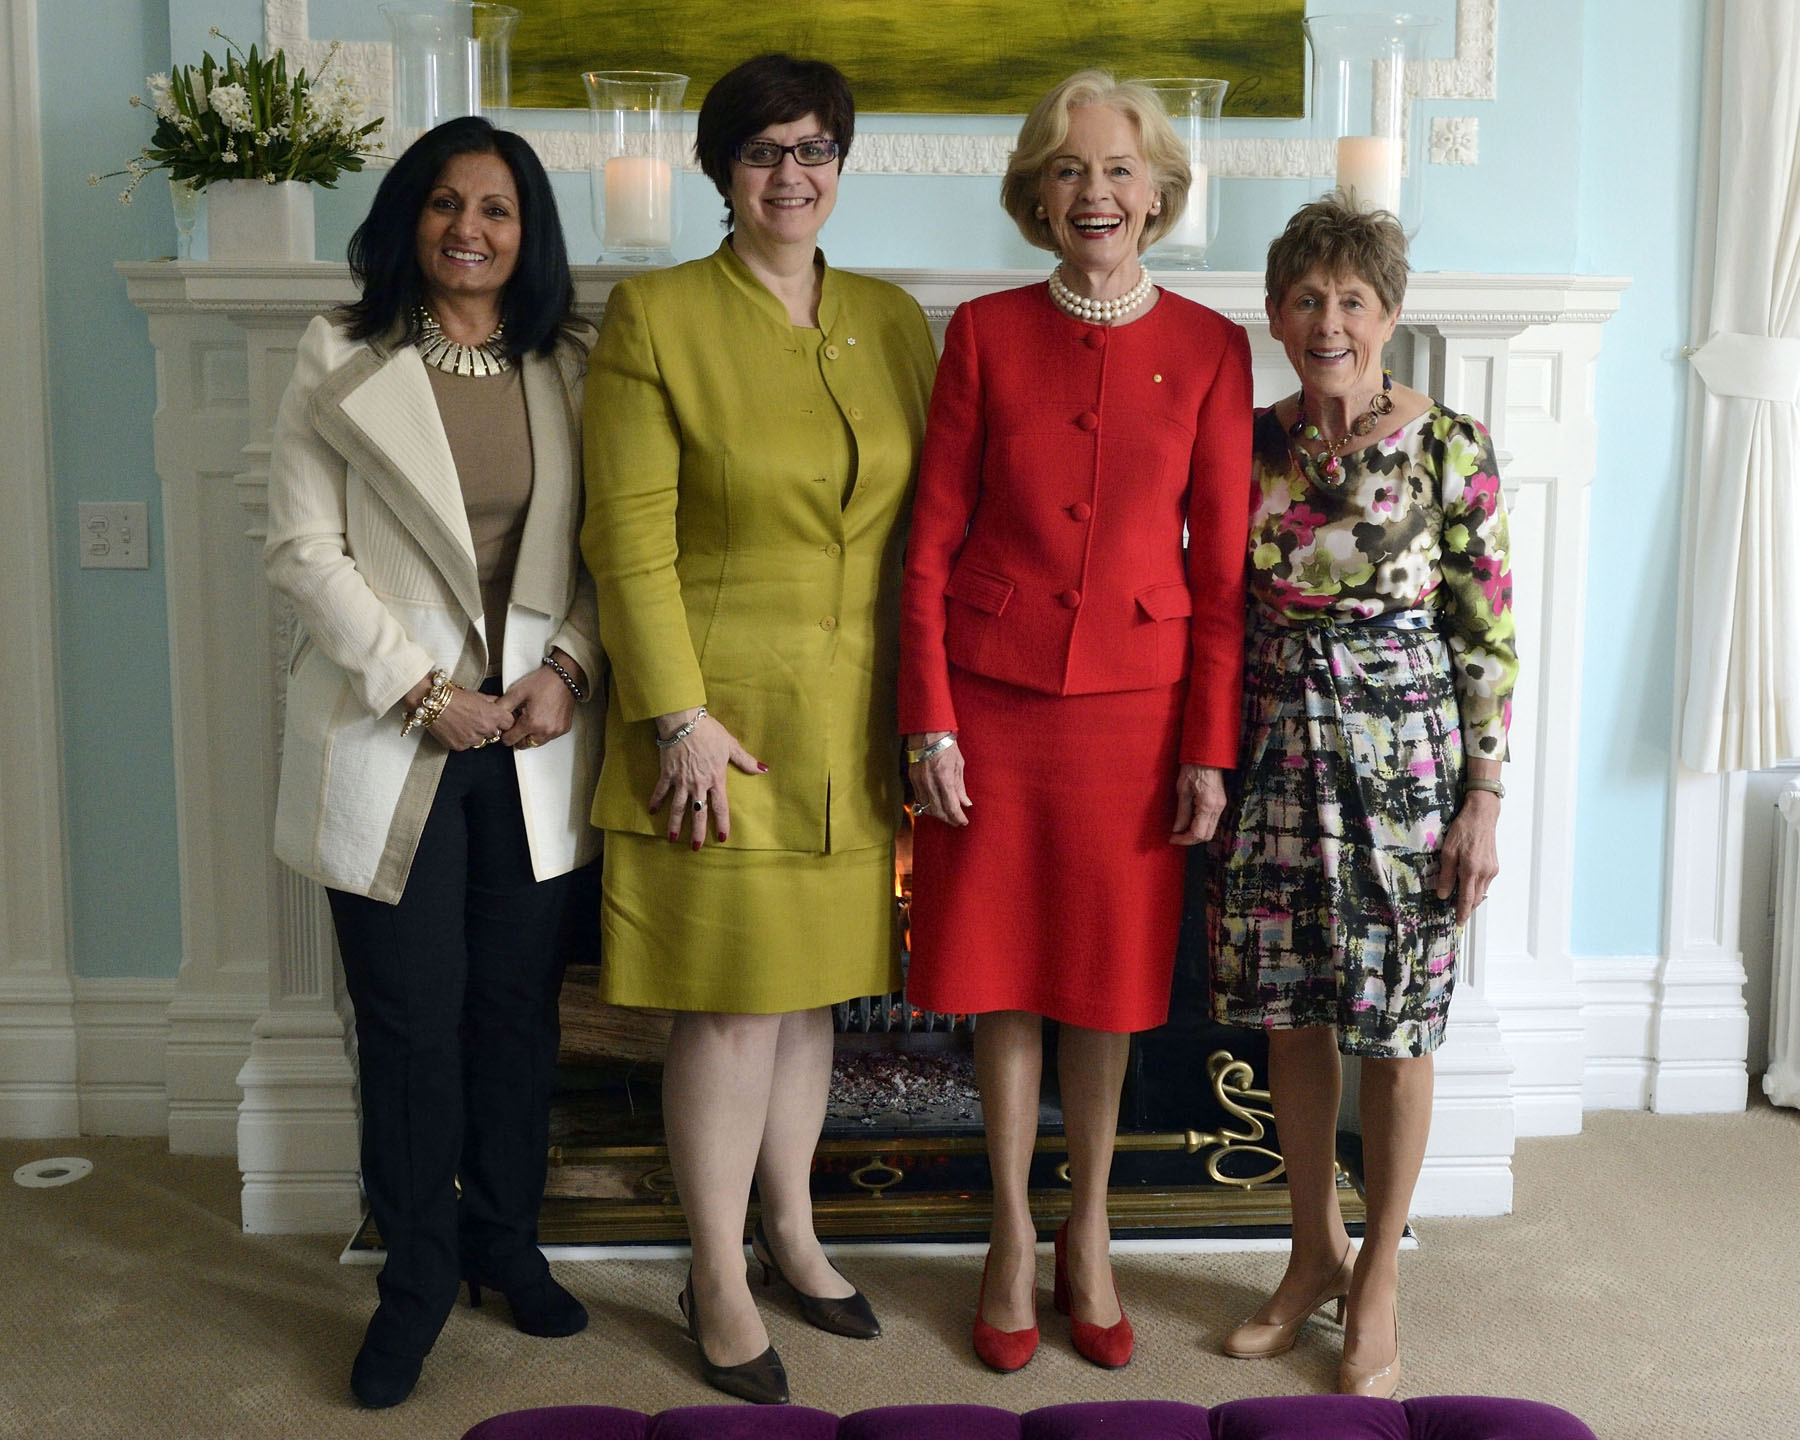 On April 5, Her Excellency Mrs. Sharon Johnston and the Governor-General of Australia, attended a luncheon with women leaders at the Official residence of the Australian High Commissioner, in Ottawa. They are pictured with Ms. Almas Jiwani, President of the Canadian National Committee for UN Women (far left) and Ms. Mary Jo Haddad, President and CEO of The Hospital for Sick Children (left).